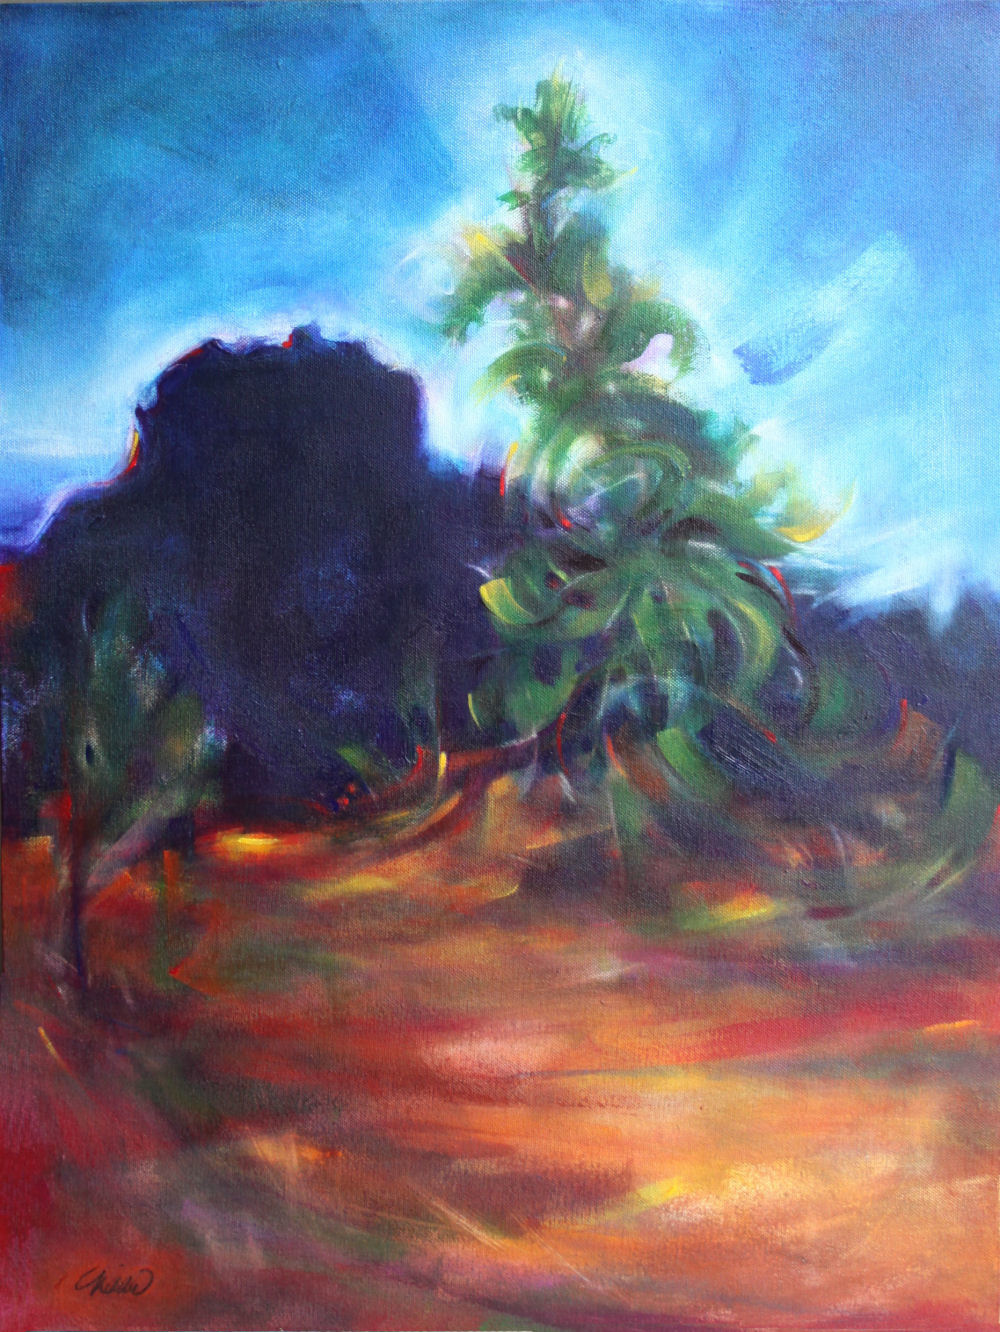 Dawn At Bell Rock, Sedona Arizona, 18H x 12W x 3D inches acrylics on canvas, wrapped sides painted, trim frame